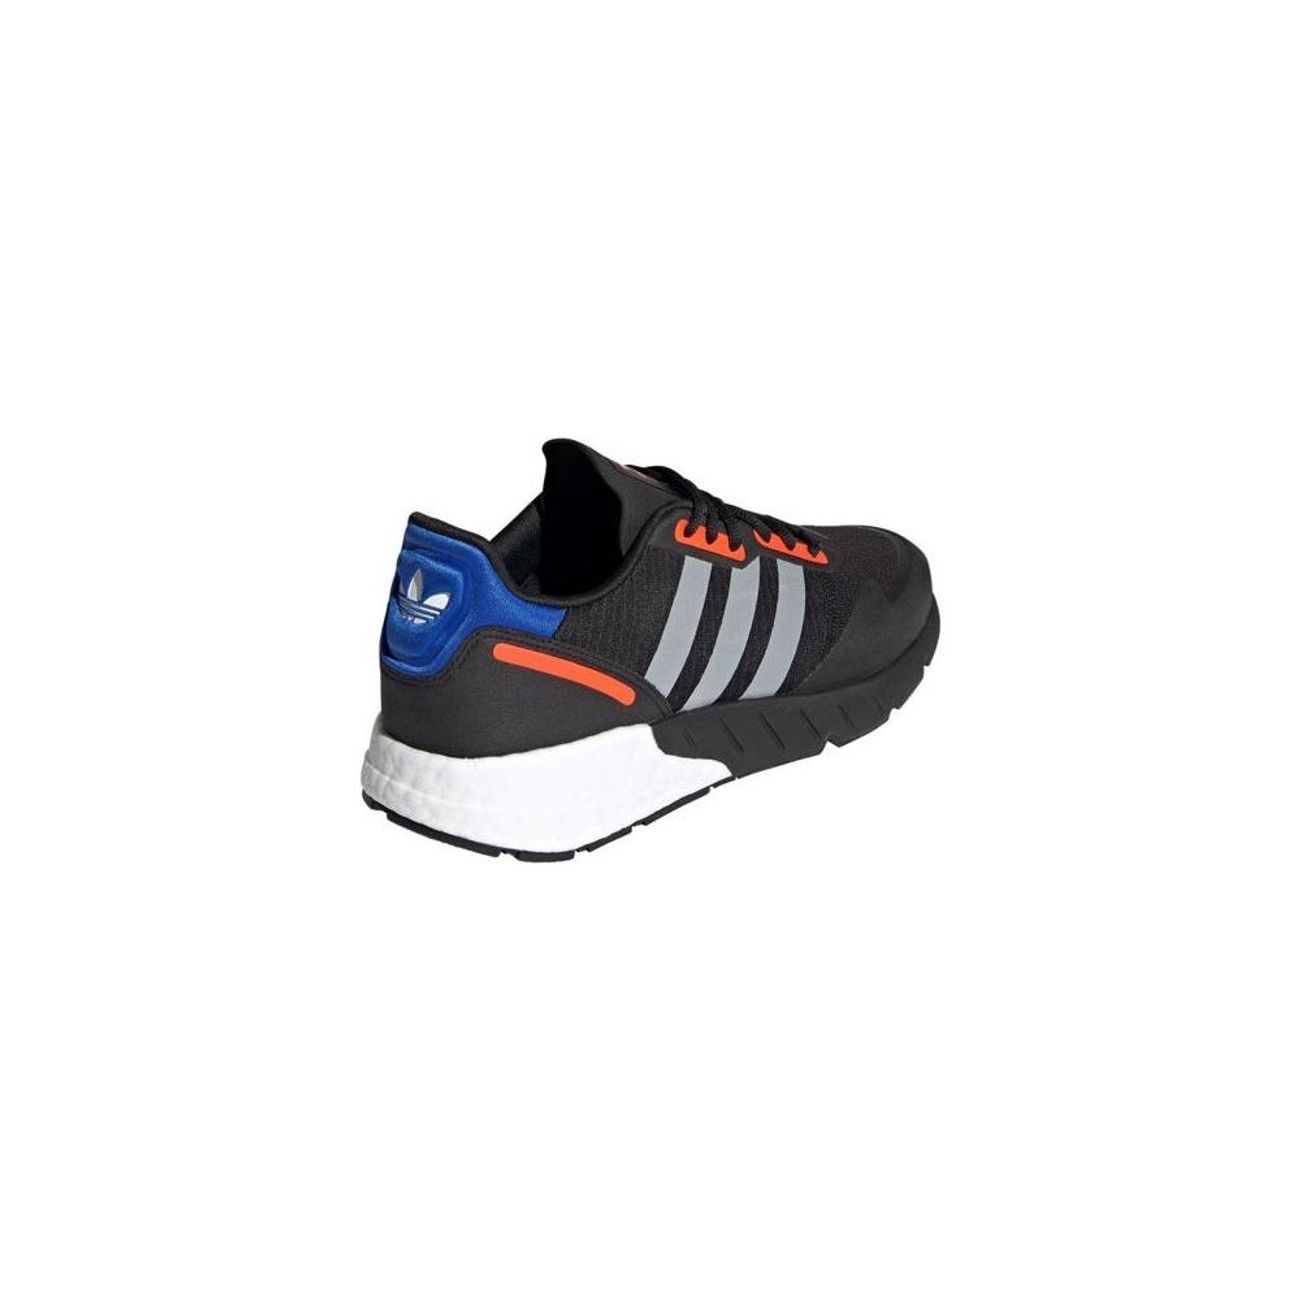 Mode- Lifestyle homme ADIDAS Adidas ZX 1K Boost